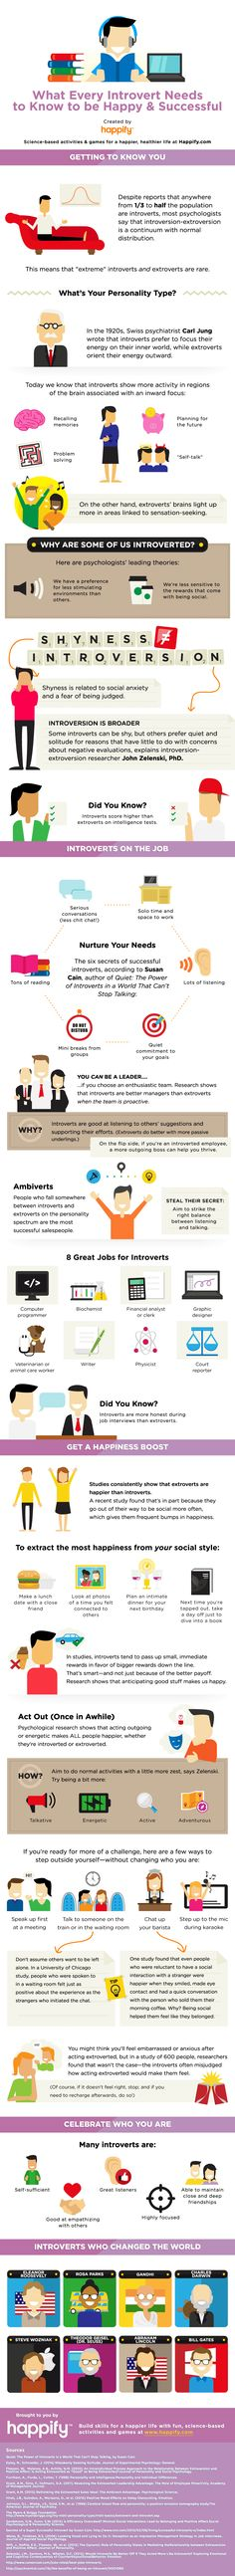 What Every #Introvert Needs to Know to Be Happy and Successful   The Muse #Psychology #Psych